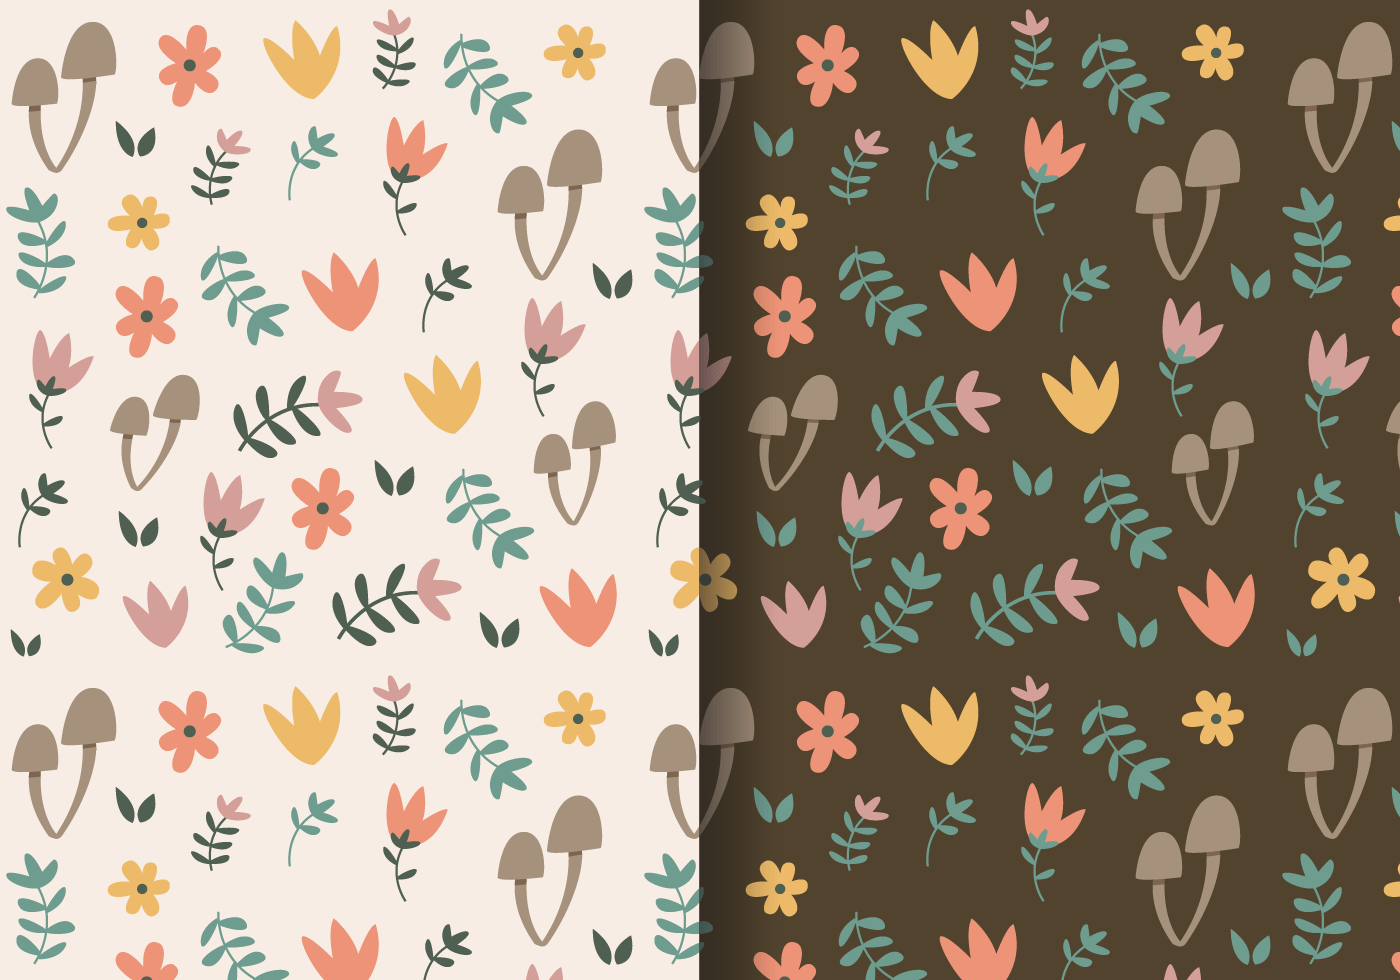 Free Wallpapers Fall Season Free Autumn Floral Pattern Download Free Vector Art